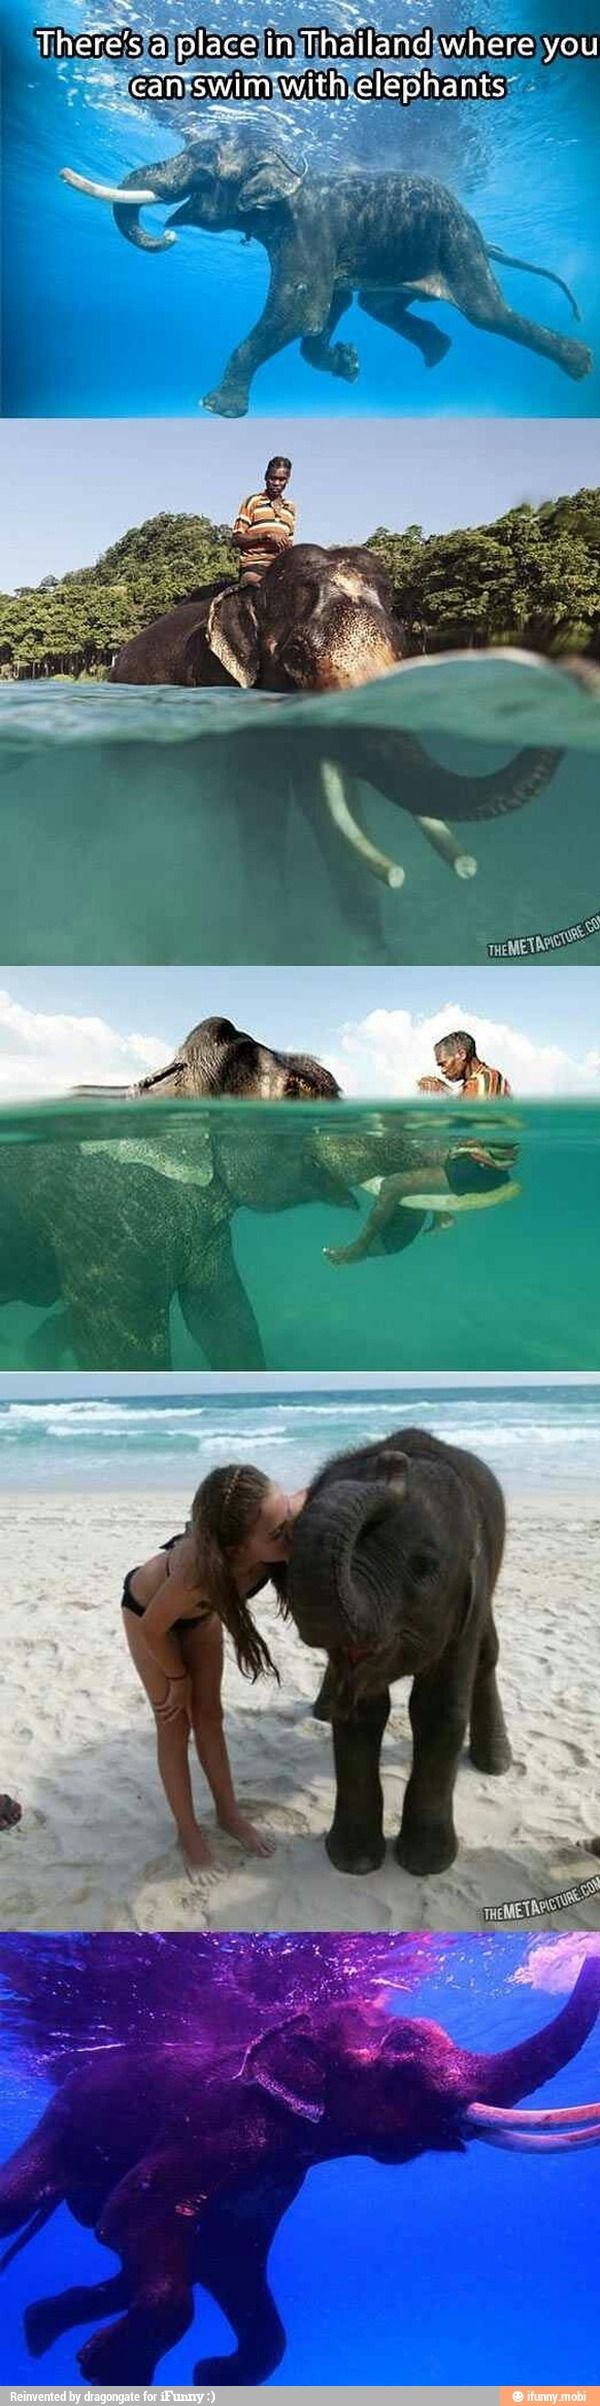 swimming with elephants in thailand - MY NEXT VACATION!